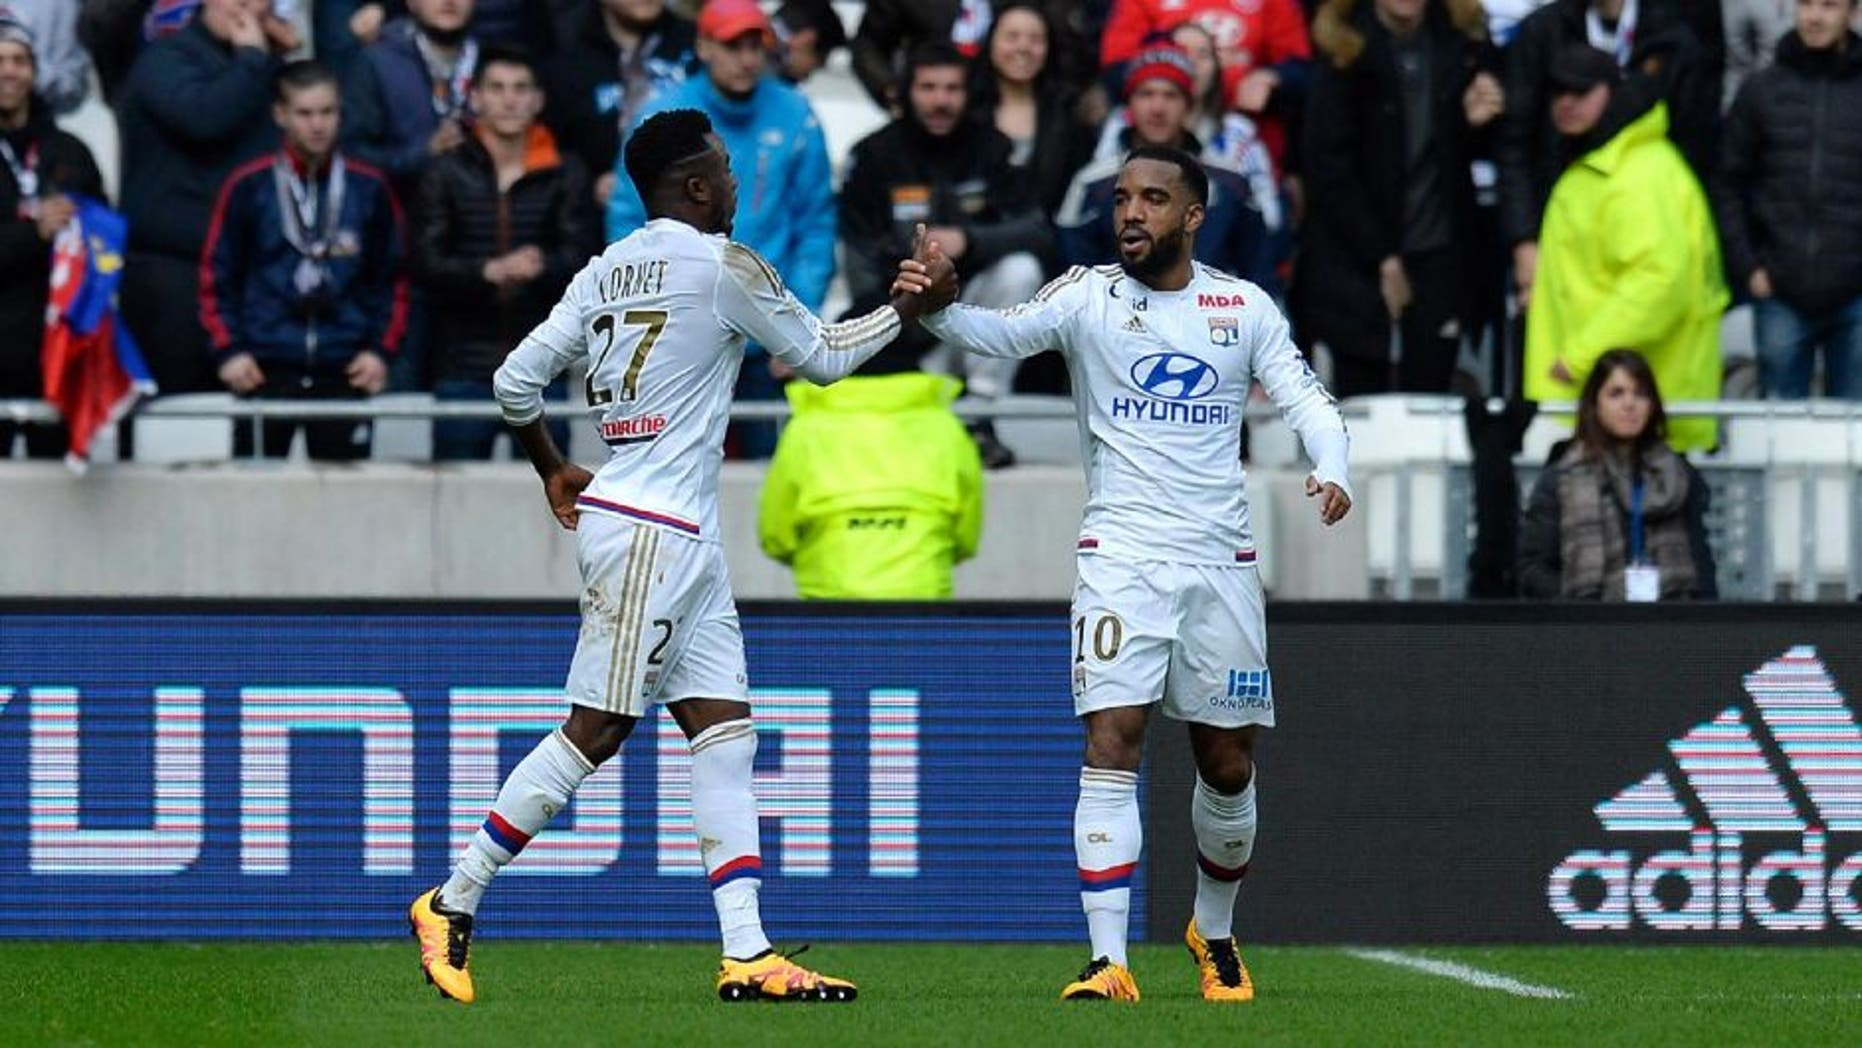 Lyon's French forward Maxwell Cornet (L) celebrates after scoring a goal with Lyon's French forward Alexandre Lacazette during the French L1 football match between Olympique Lyonnais (OL) and Stade Malherbe Caen (SMC) at the Parc Olympique Lyonnais stadium in Decines-Charpieu, central-eastern France on February 14, 2016. / AFP / ROMAIN LAFABREGUE (Photo credit should read ROMAIN LAFABREGUE/AFP/Getty Images)